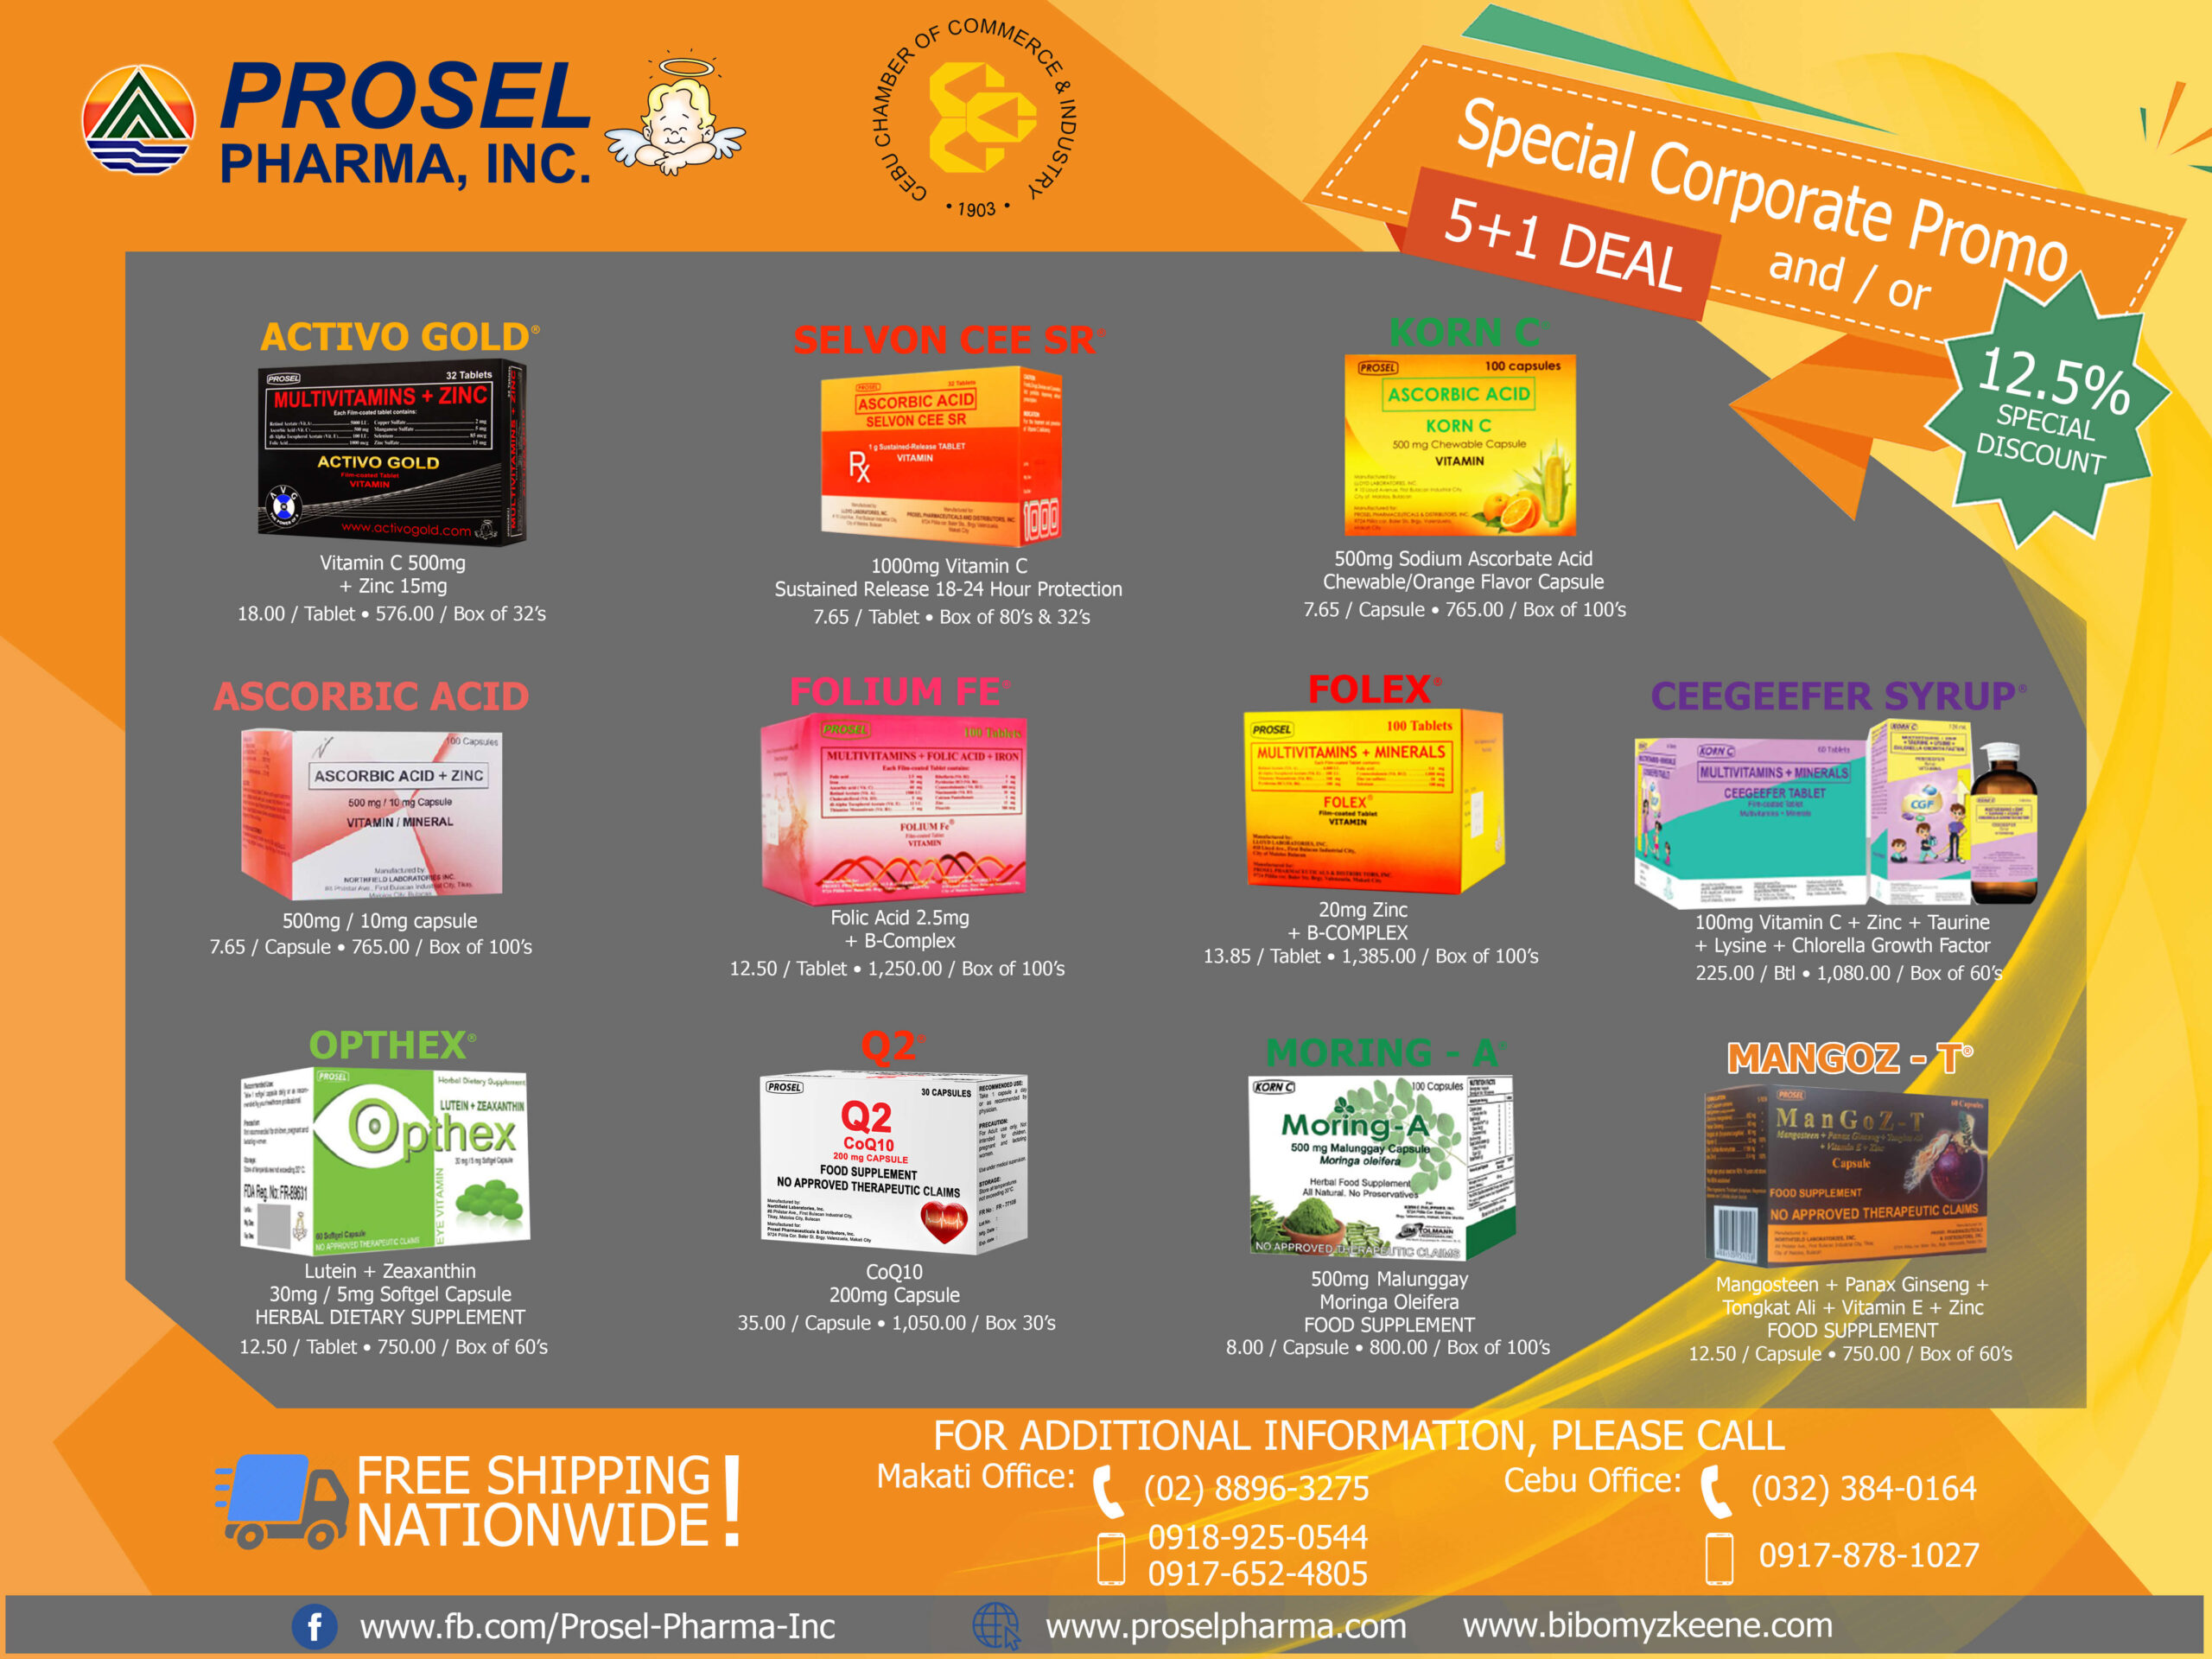 Prosel Pharma offers special discount